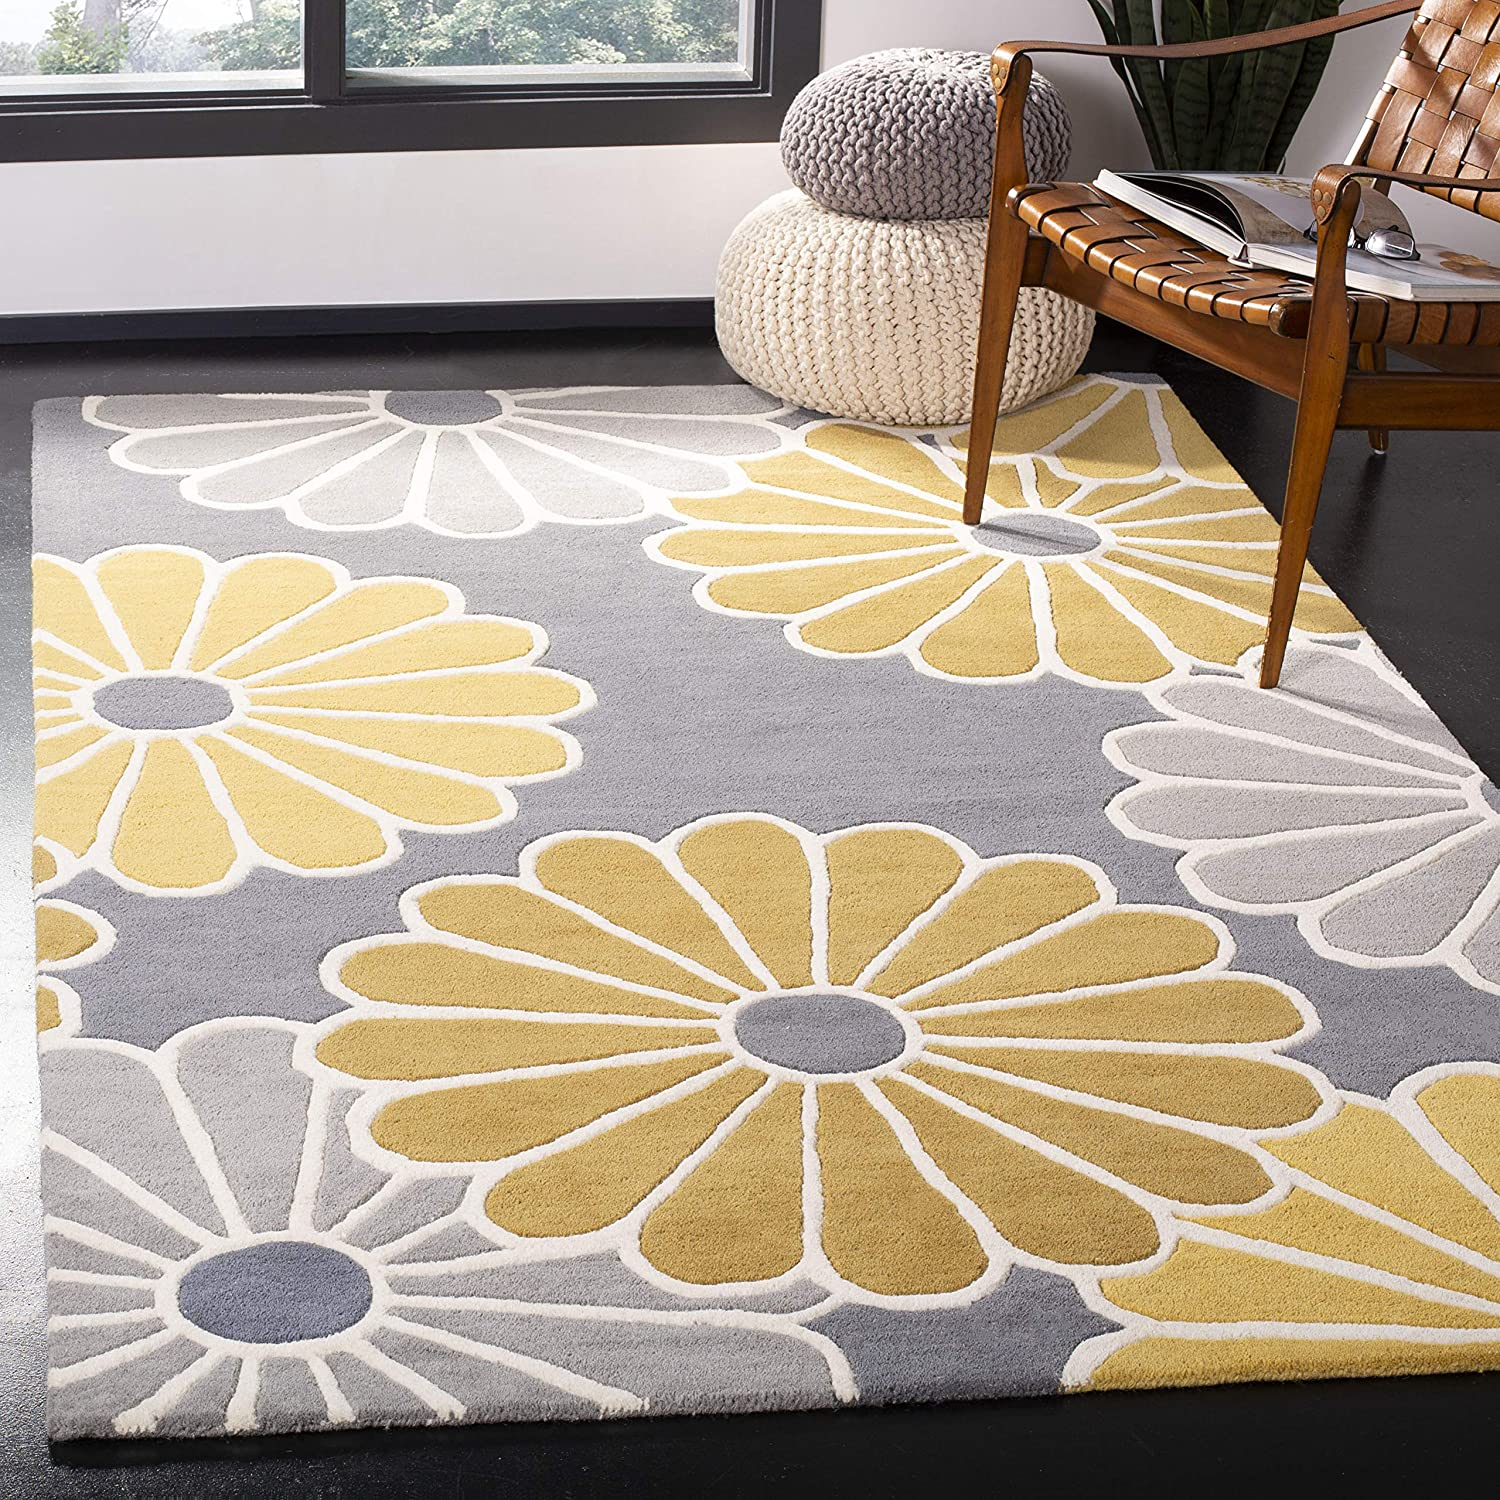 Amazon Com Safavieh Soho Collection Soh705a Handmade Premium Wool Viscose Area Rug 5 X 8 Grey Yellow Furniture Decor